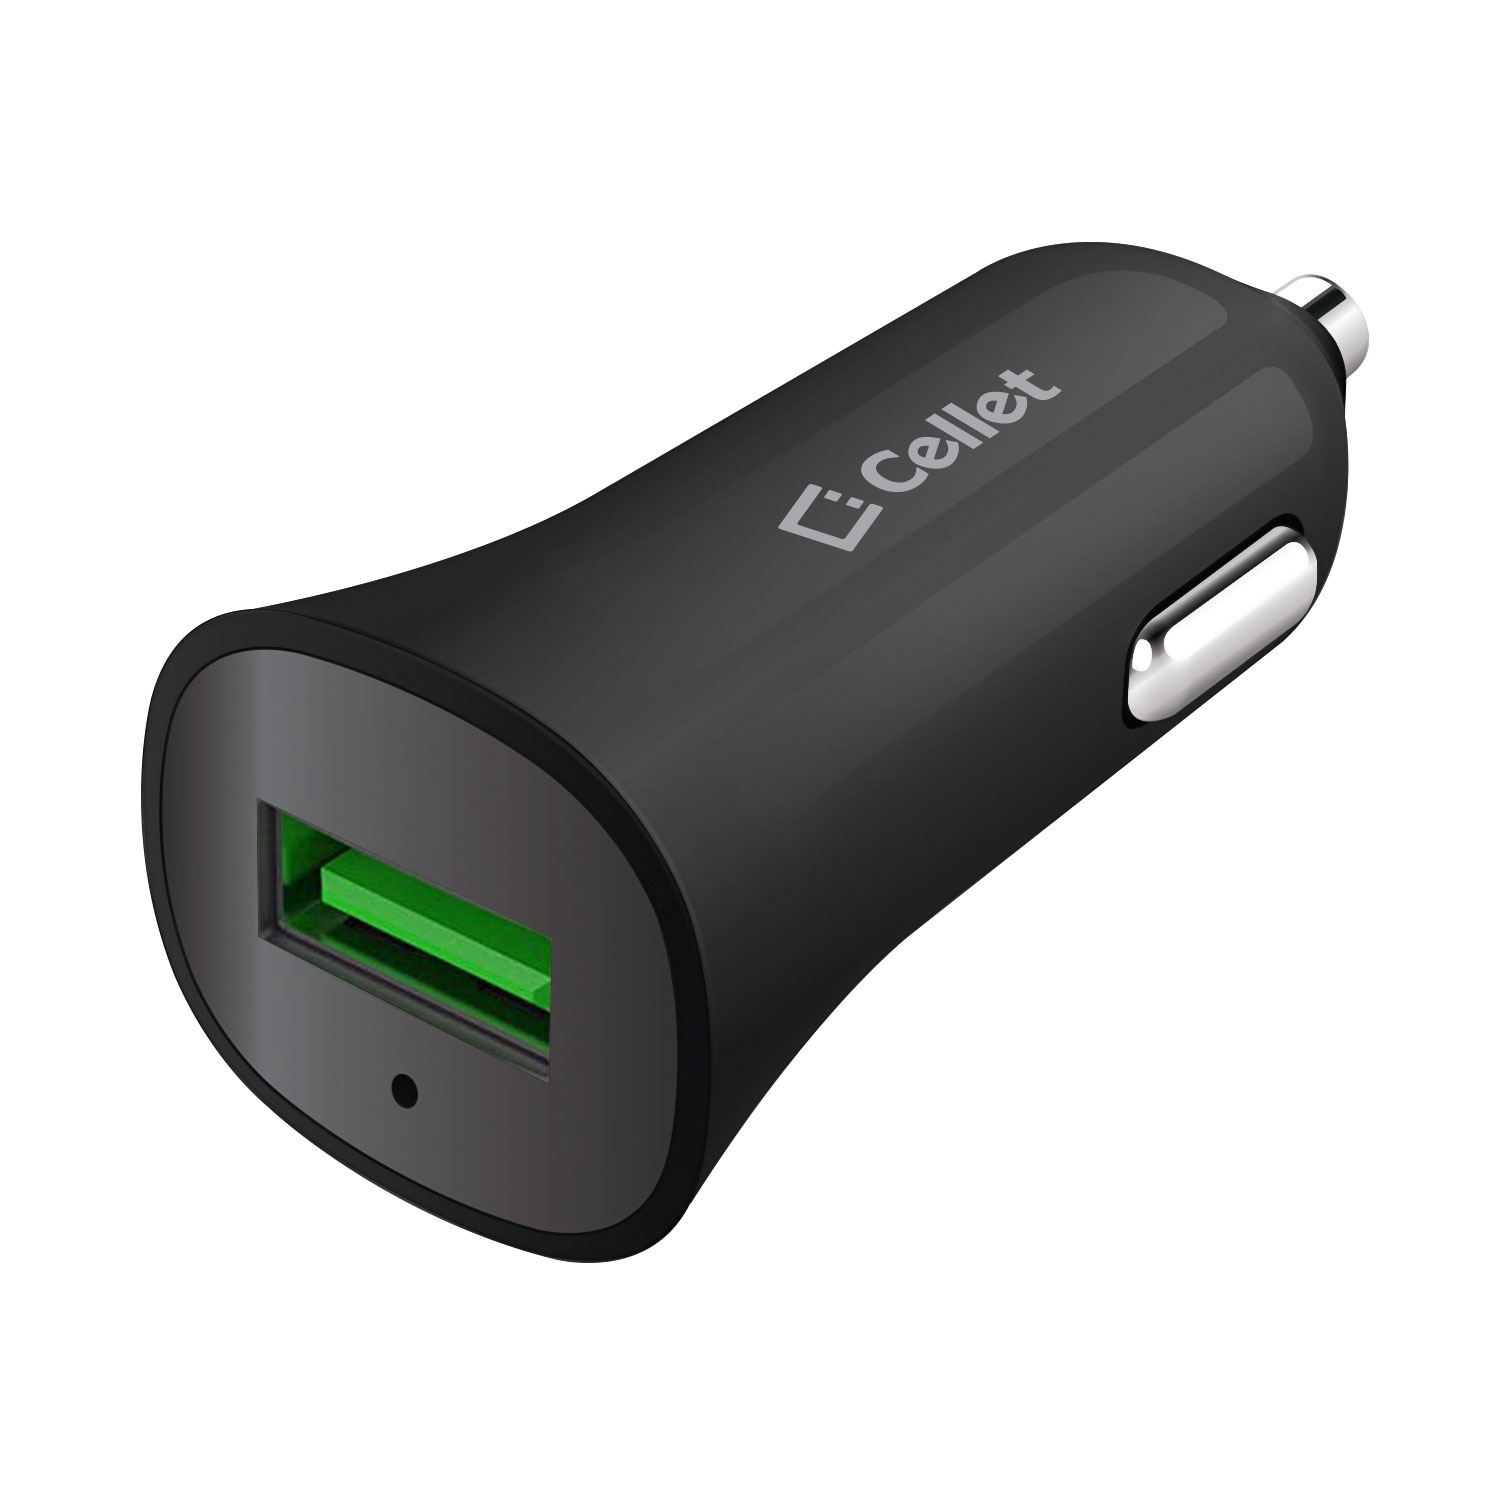 Nokia Lumia Icon Car Charger Quick Charge 3.0 Black 3.3ft